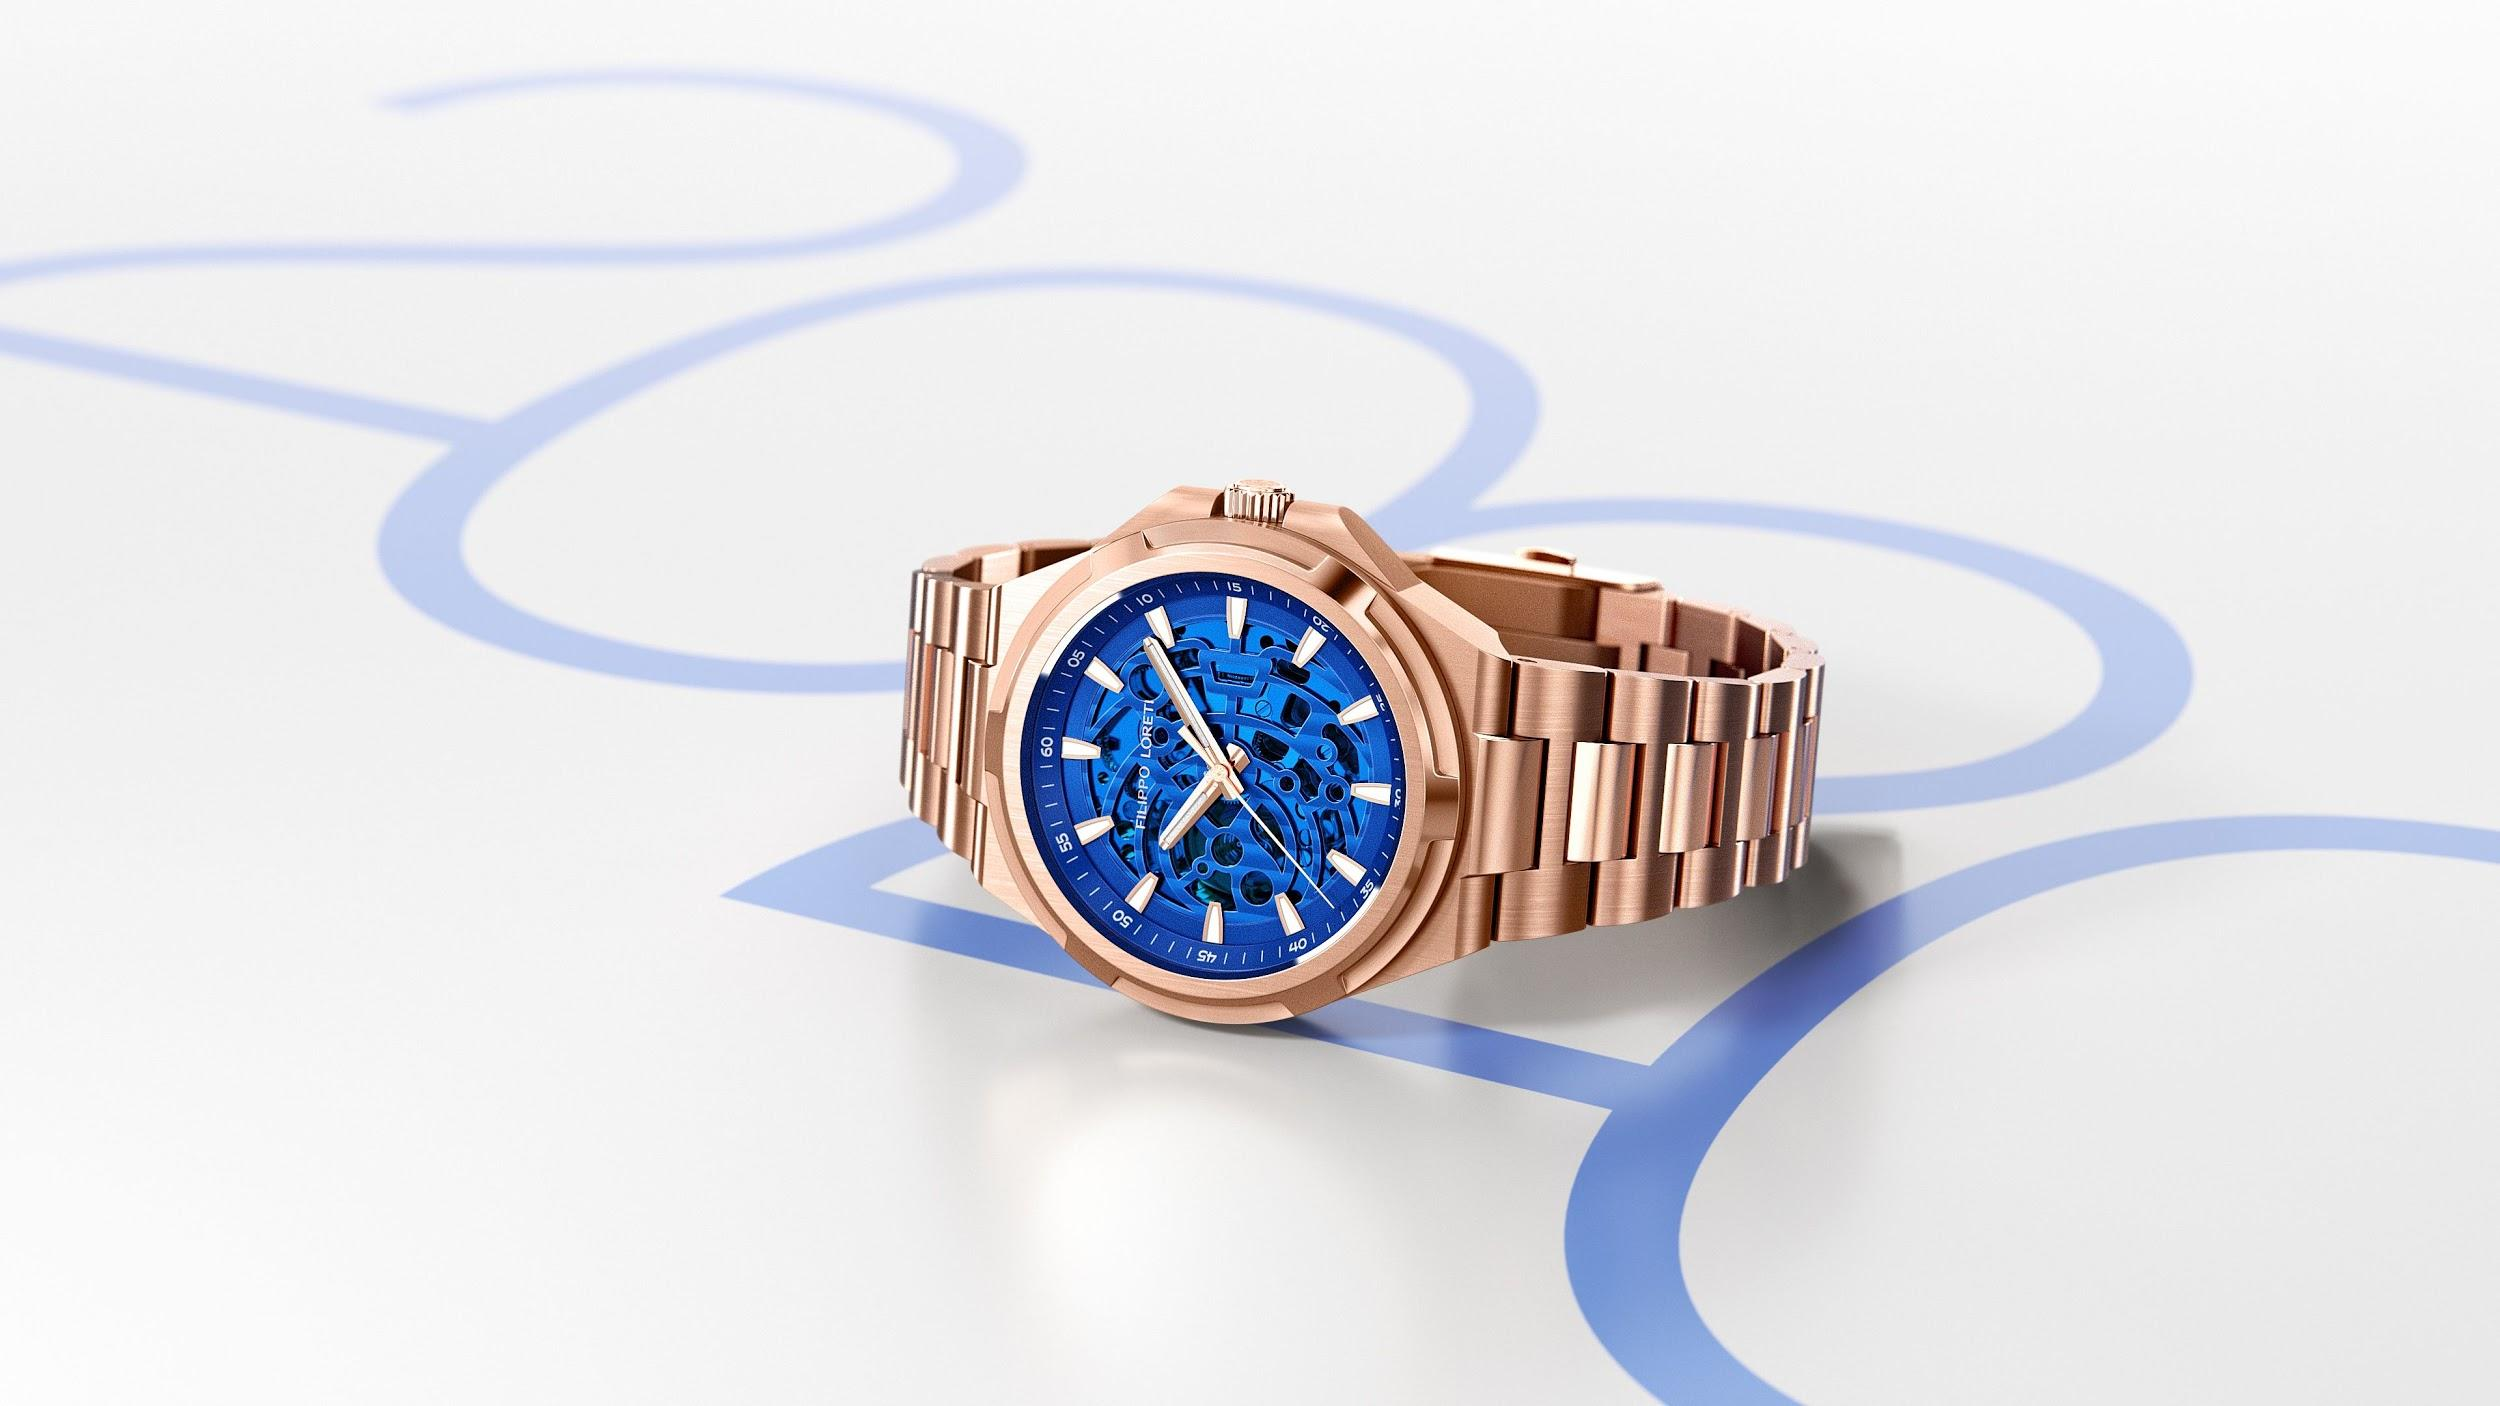 Skeleton Rose Gold Blue Automatic Watch from Filippo Loreti